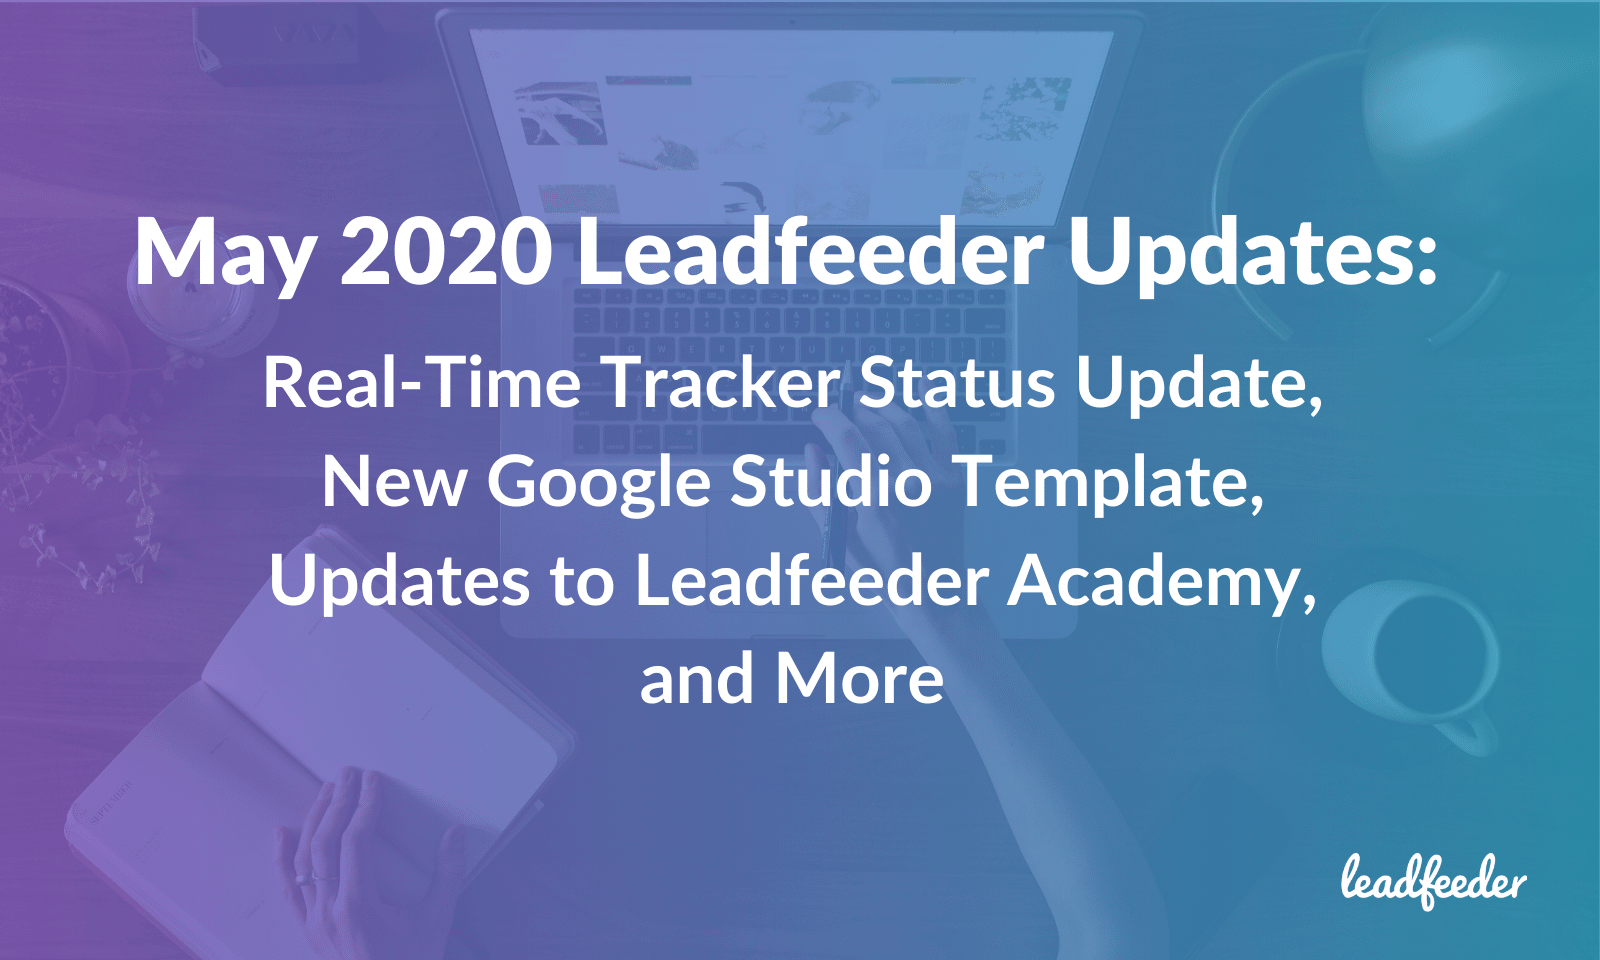 may leadfeeder updates 2020